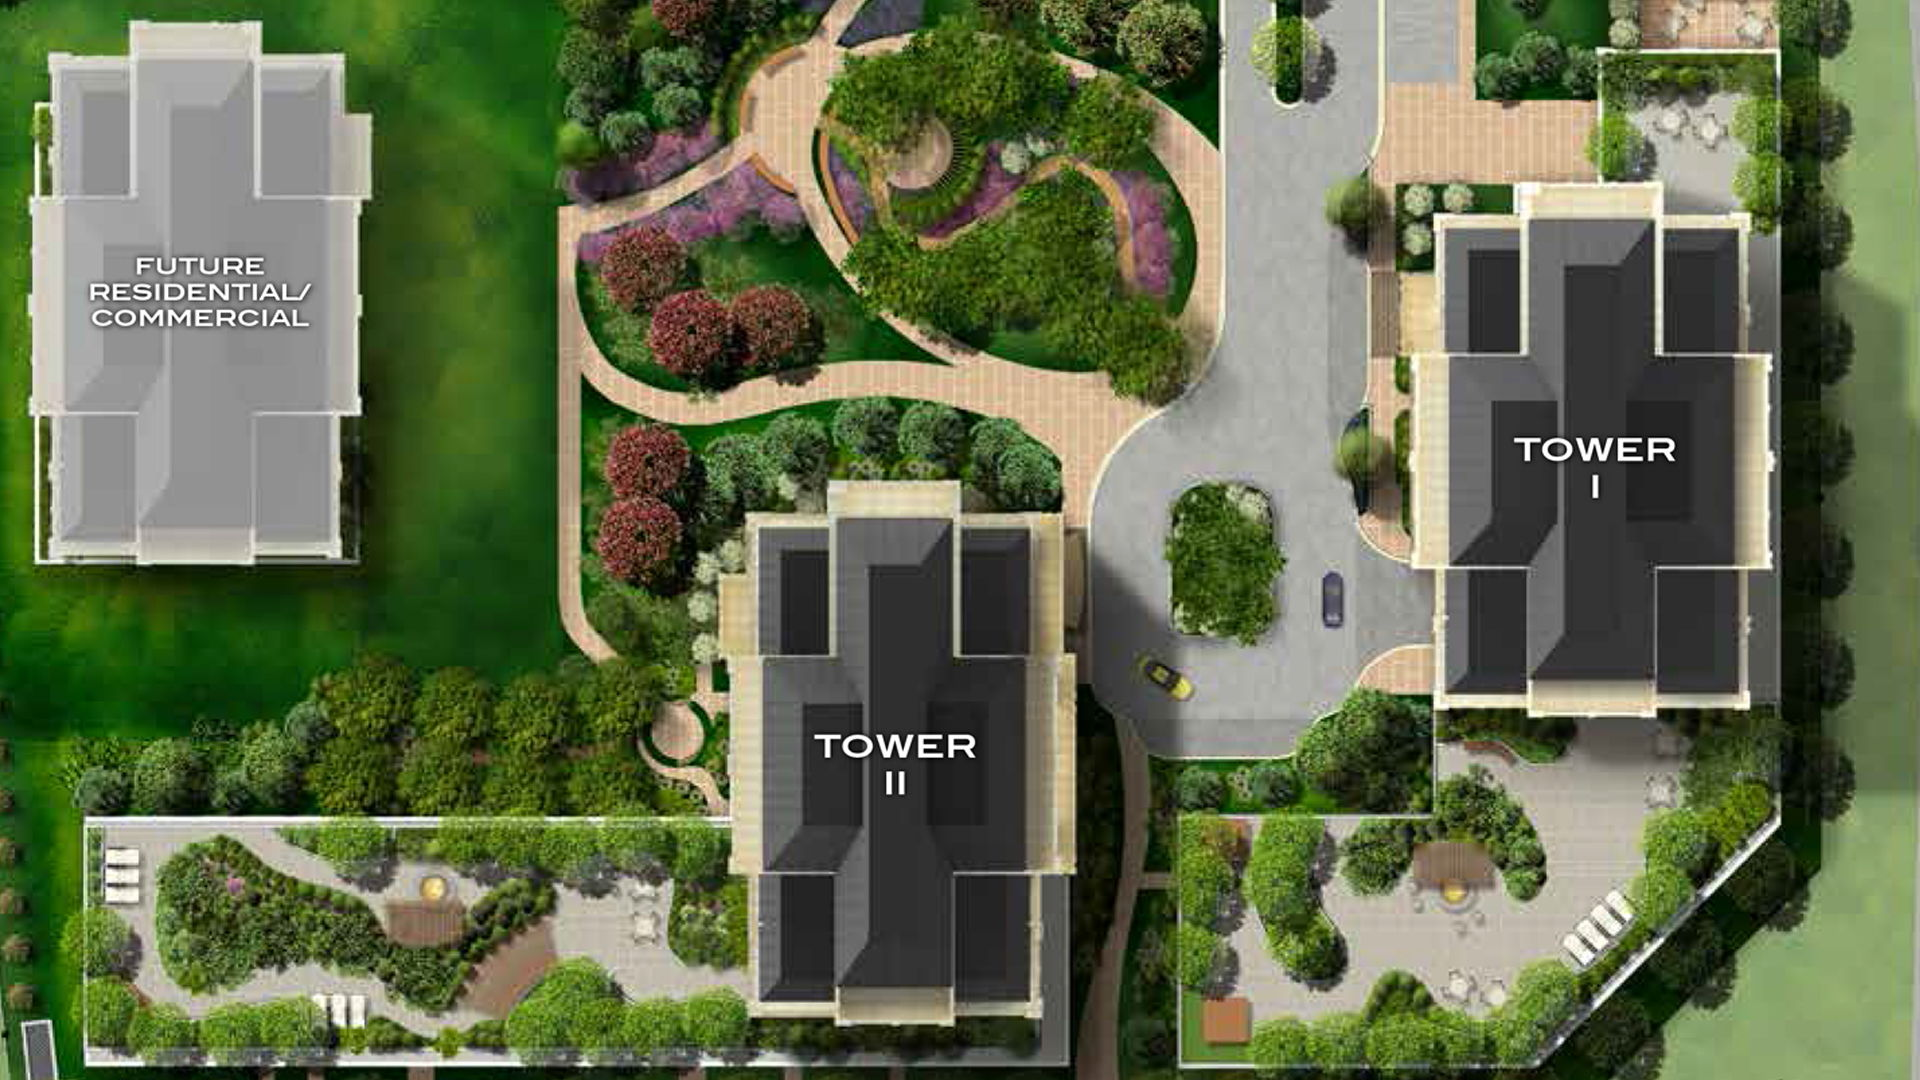 Site plan for Park Avenue Place in Vaughan, Ontario